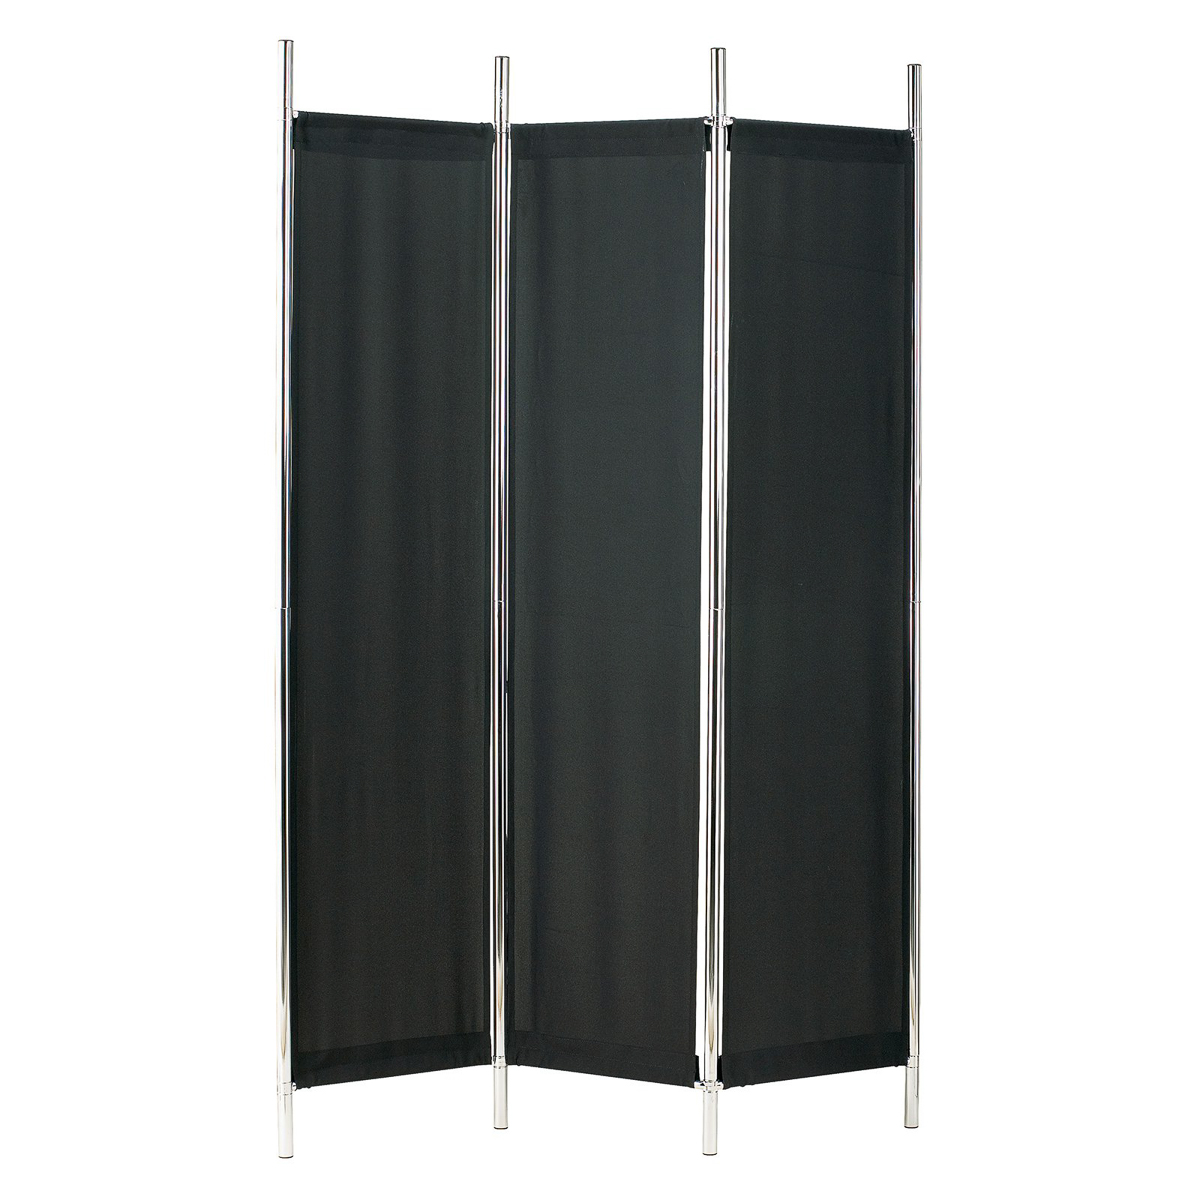 adesso rita 6ft tall folding room divider 3 panel fabric standing privacy screen ebay. Black Bedroom Furniture Sets. Home Design Ideas